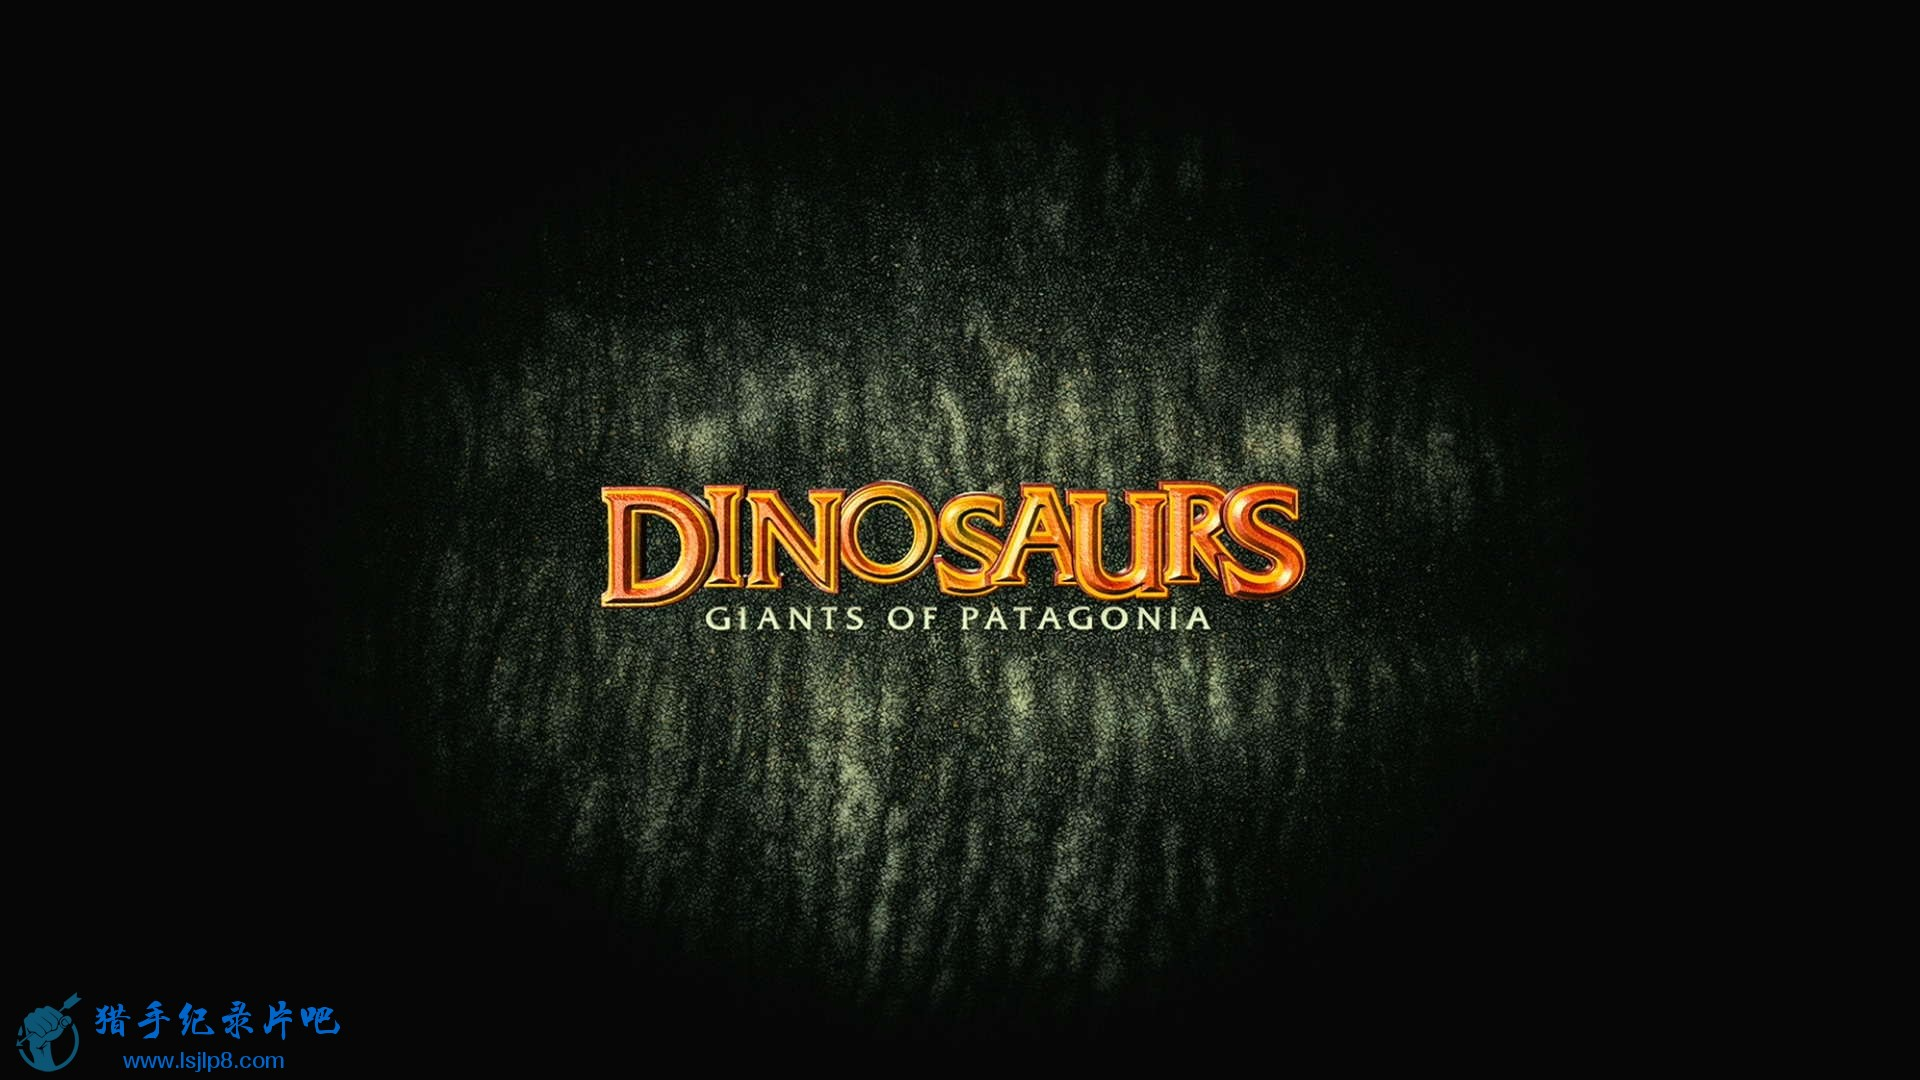 IMAX.Dinosaurs.Giants.of.Patagonia.2007.1080p.BluRay.x264-DON.mkv_20200726_10495.jpg